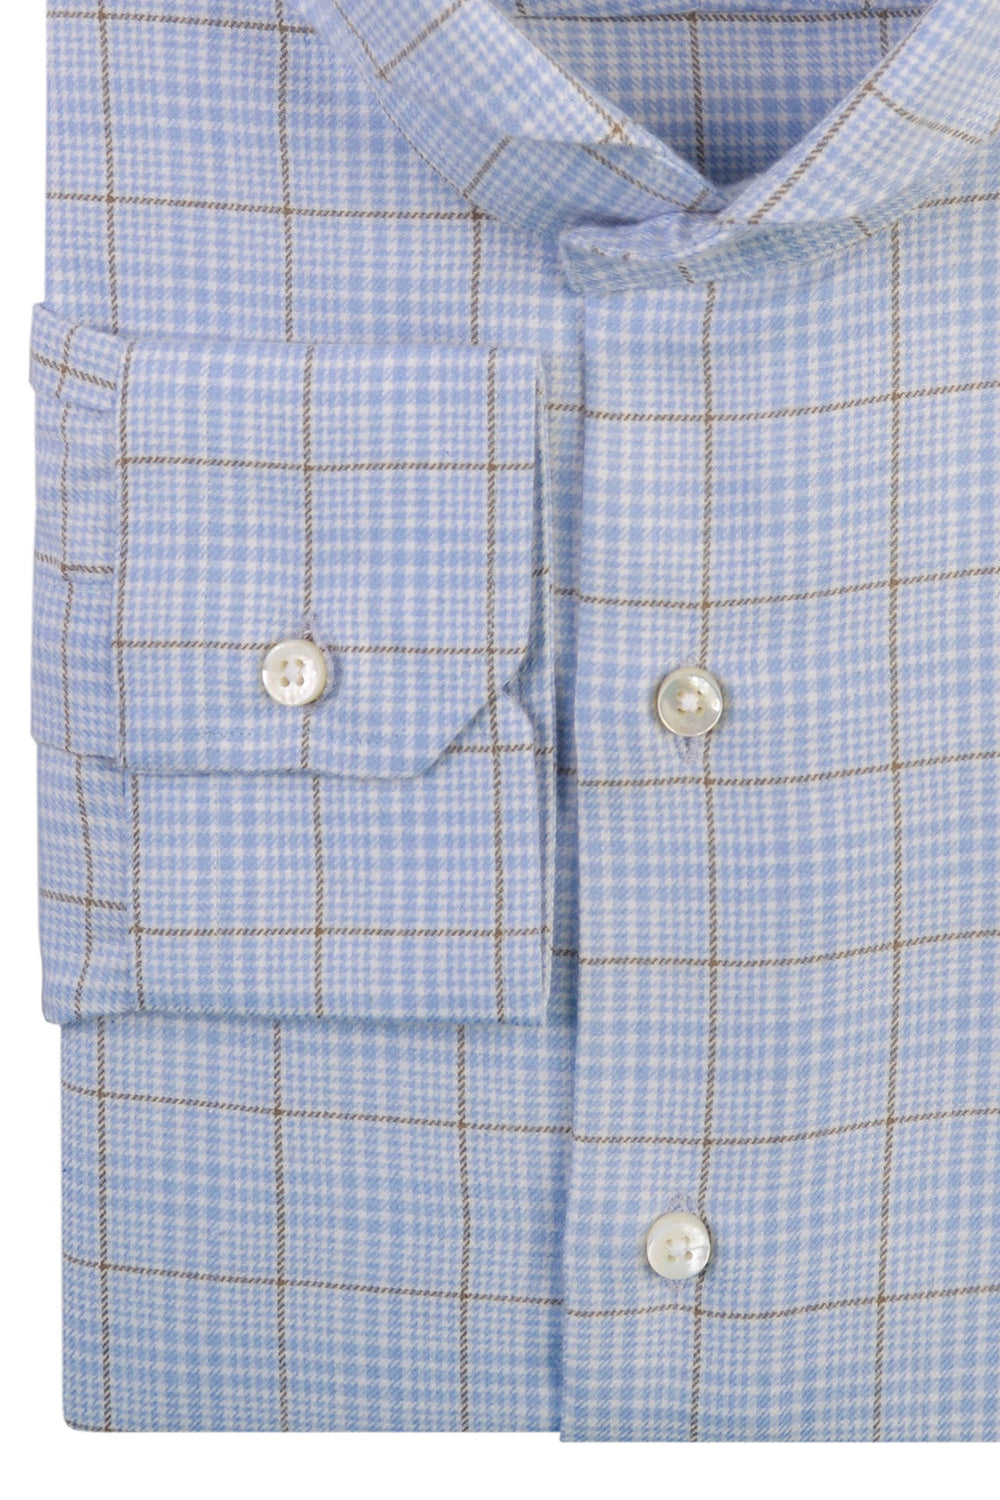 Cashmerello Alumo: Pastle Blue Olive Glen Checks